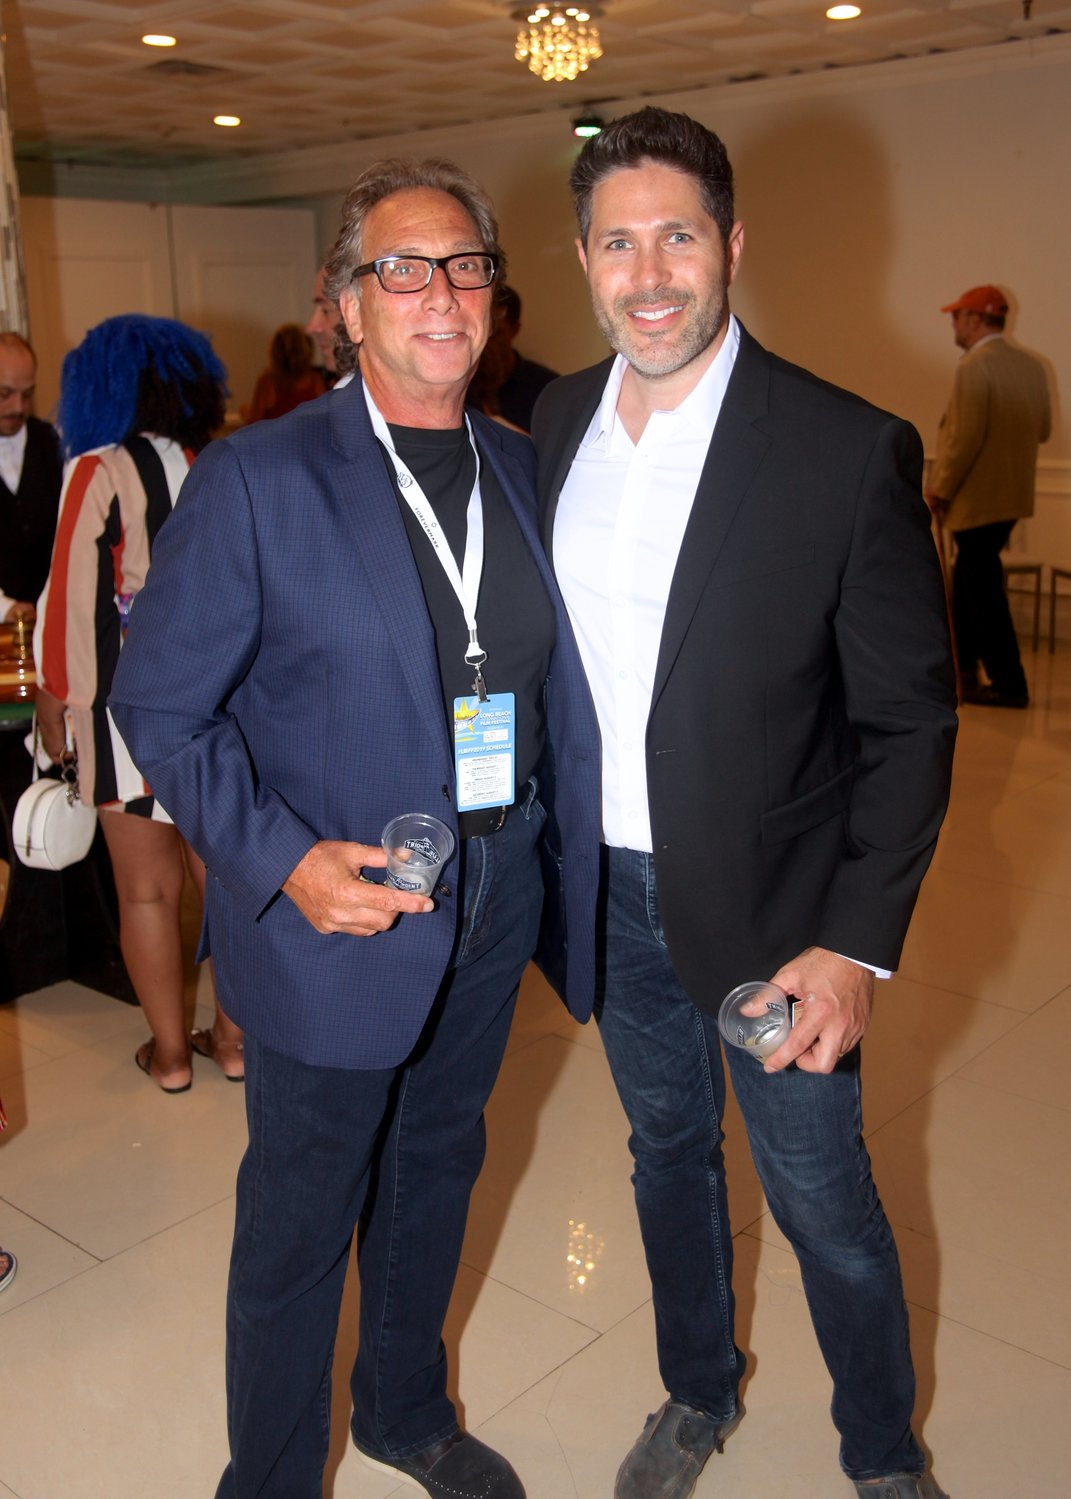 Ira Parr, left, and Long Beach International Film Festival co-founder Craig Weintraub at the casino night on August 3.